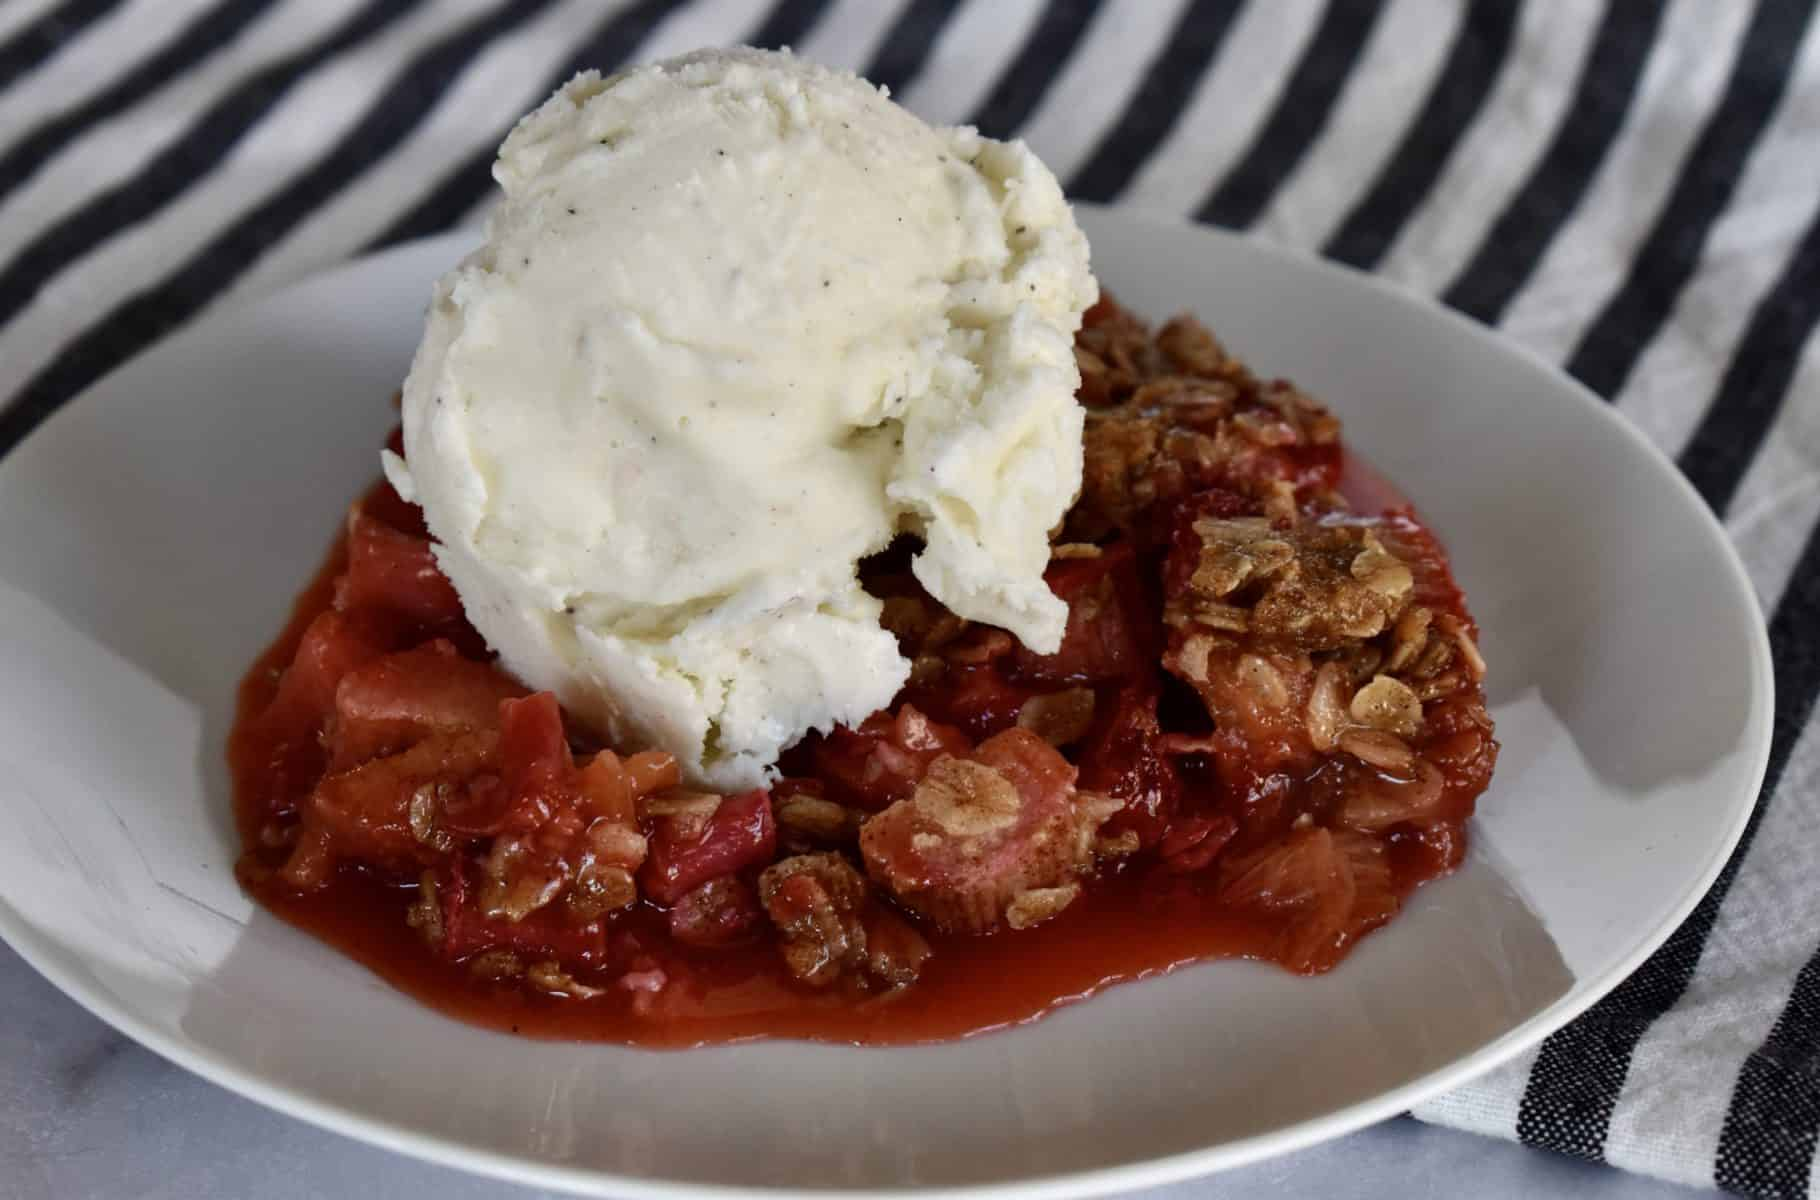 Strawberry Rhubarb Crisp on a white plate with a scoop of vanilla ice cream.